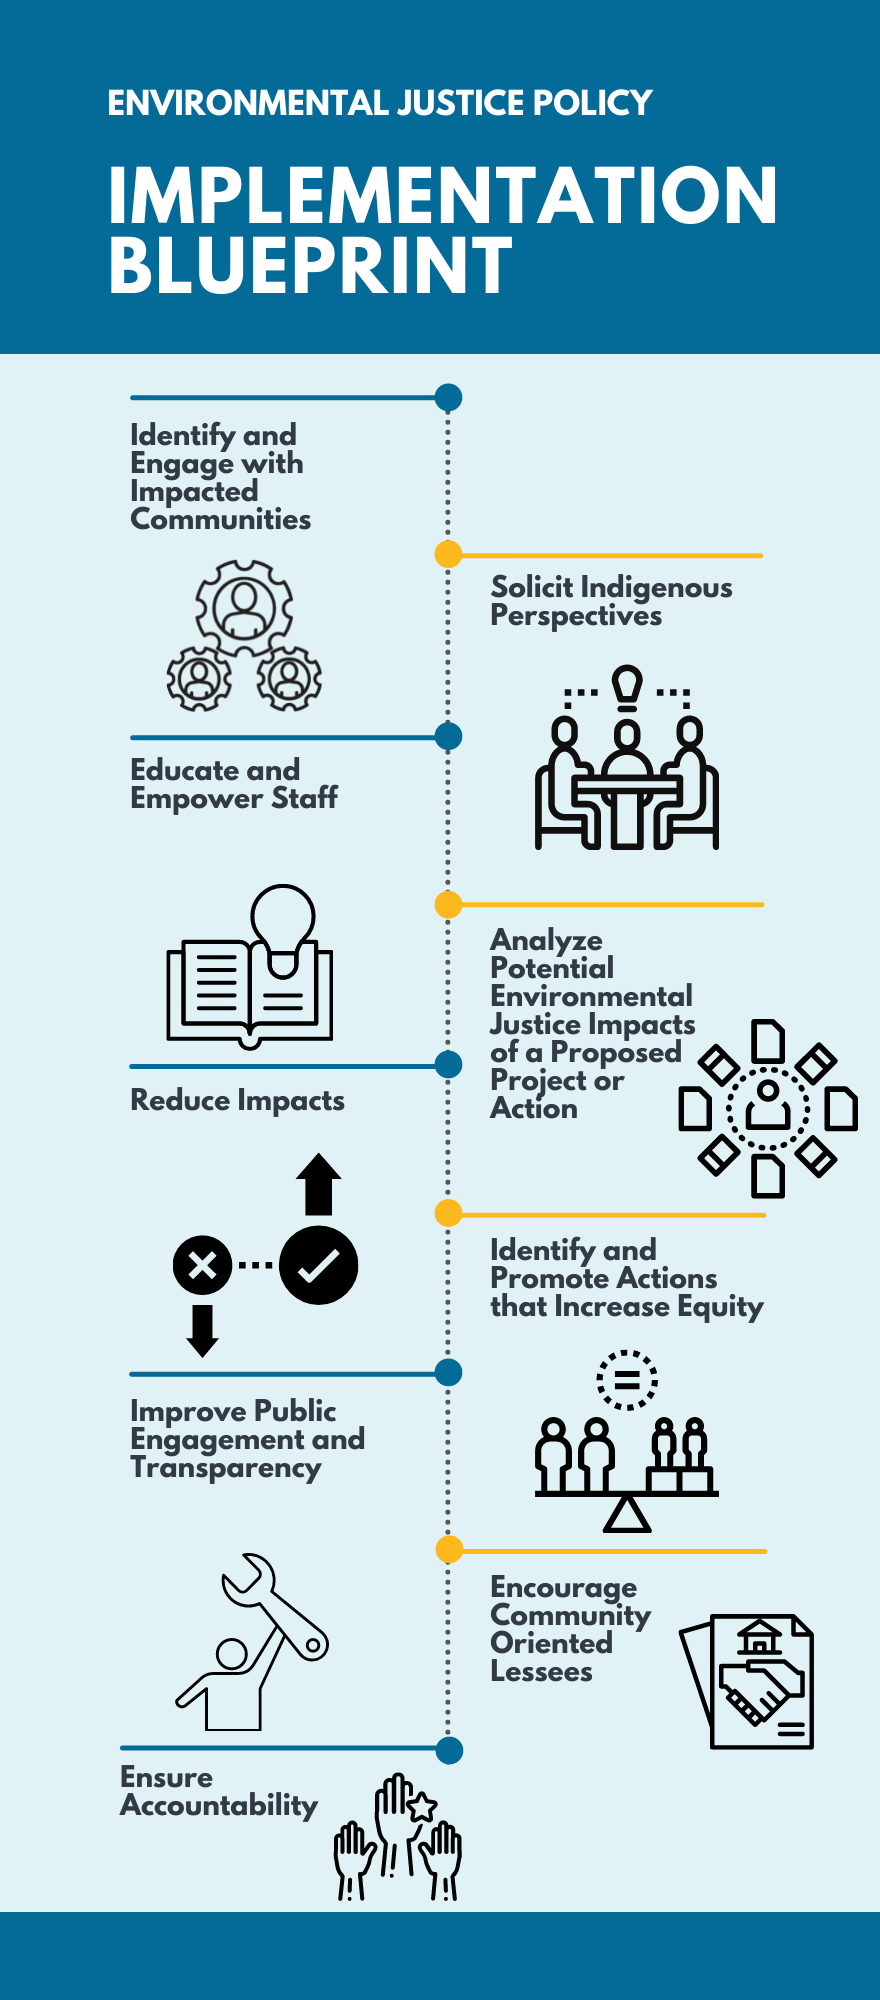 Environmental Justice Policy Implementation Blueprint: • Identify and engage with impacted communities • Solicit indigenous perspectives • Educate and empower staff • Analyze potential environmental justice impacts of a proposed project or action • Reduce impacts • Identify and promote actions that increase equity • Improve public engagement and transparency • Encourage community-oriented leases • Ensure accountability